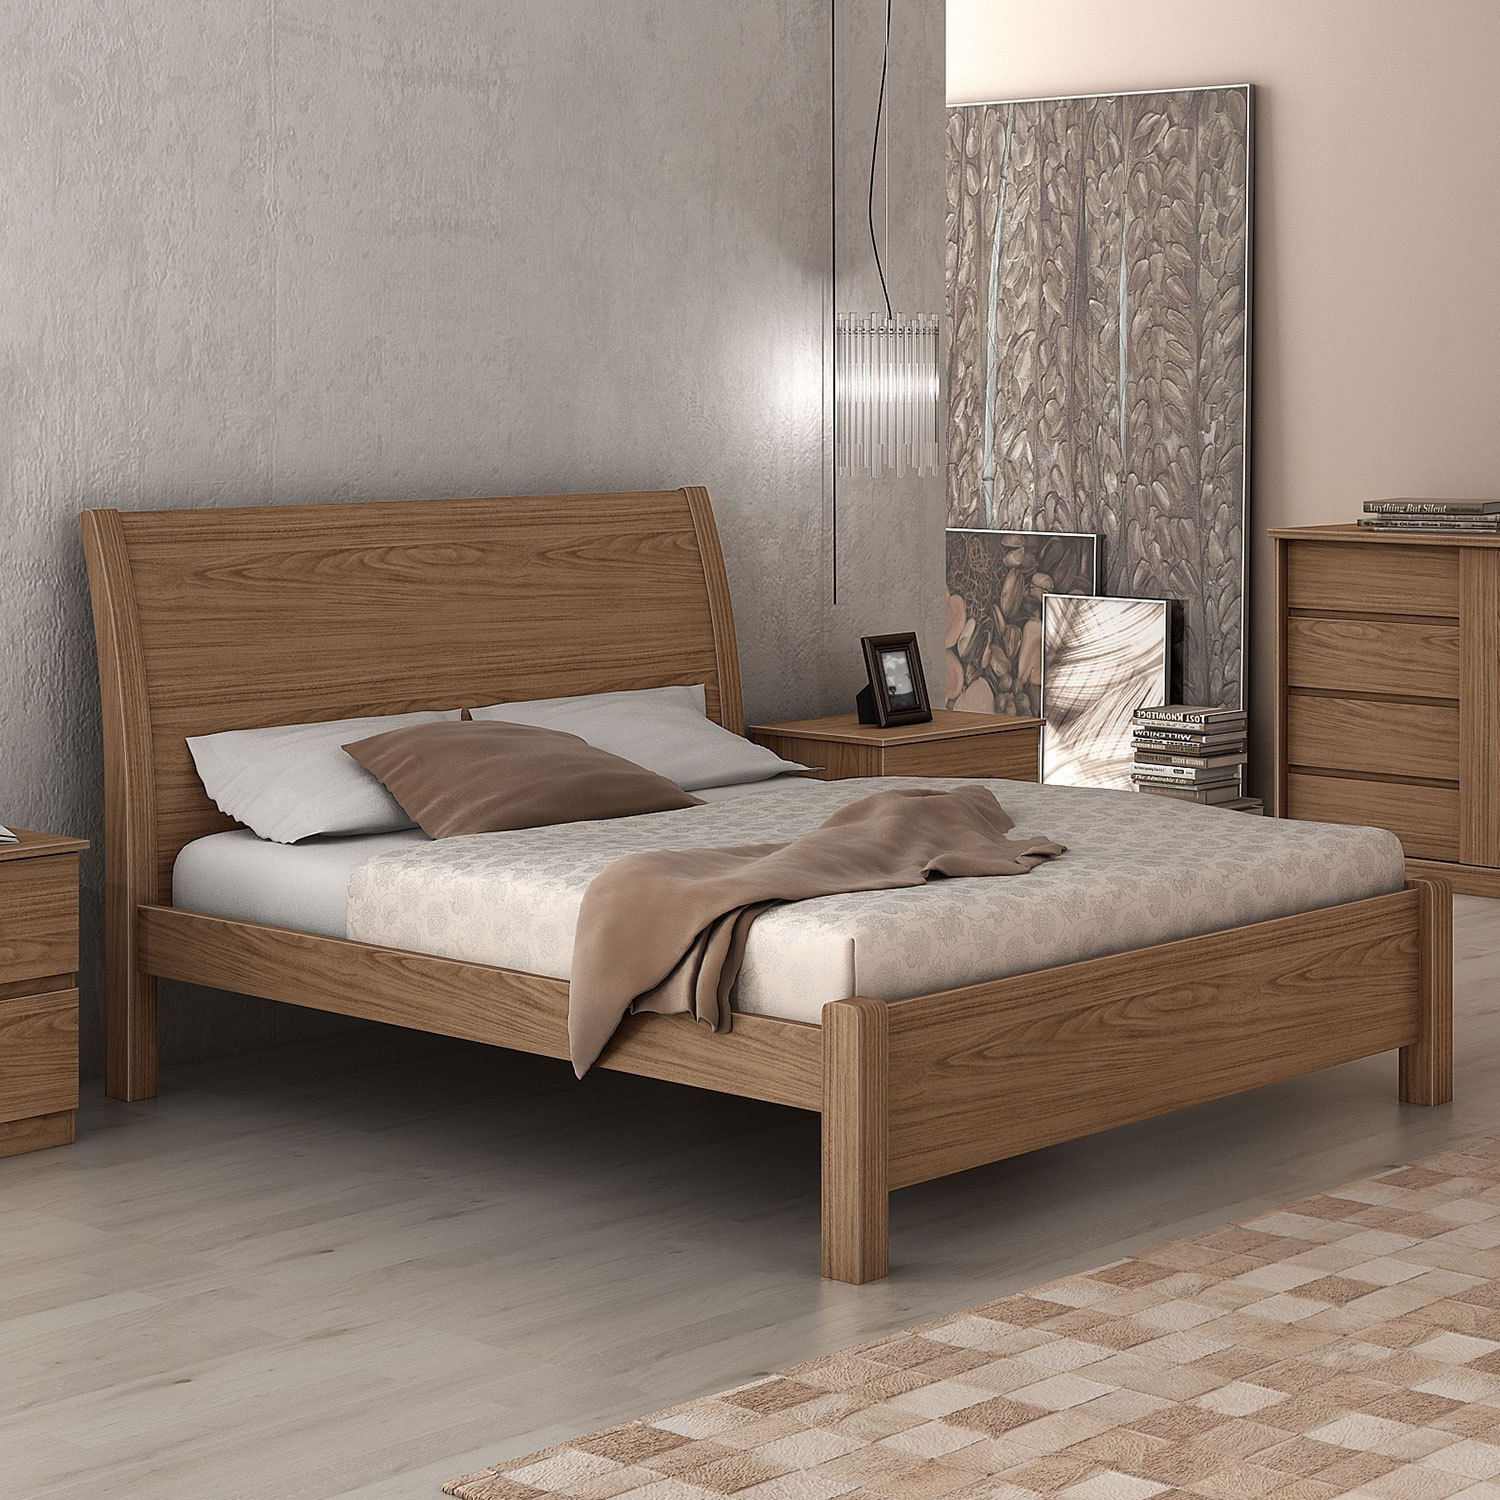 Azur | Bedrooms, Wood beds and Bed design